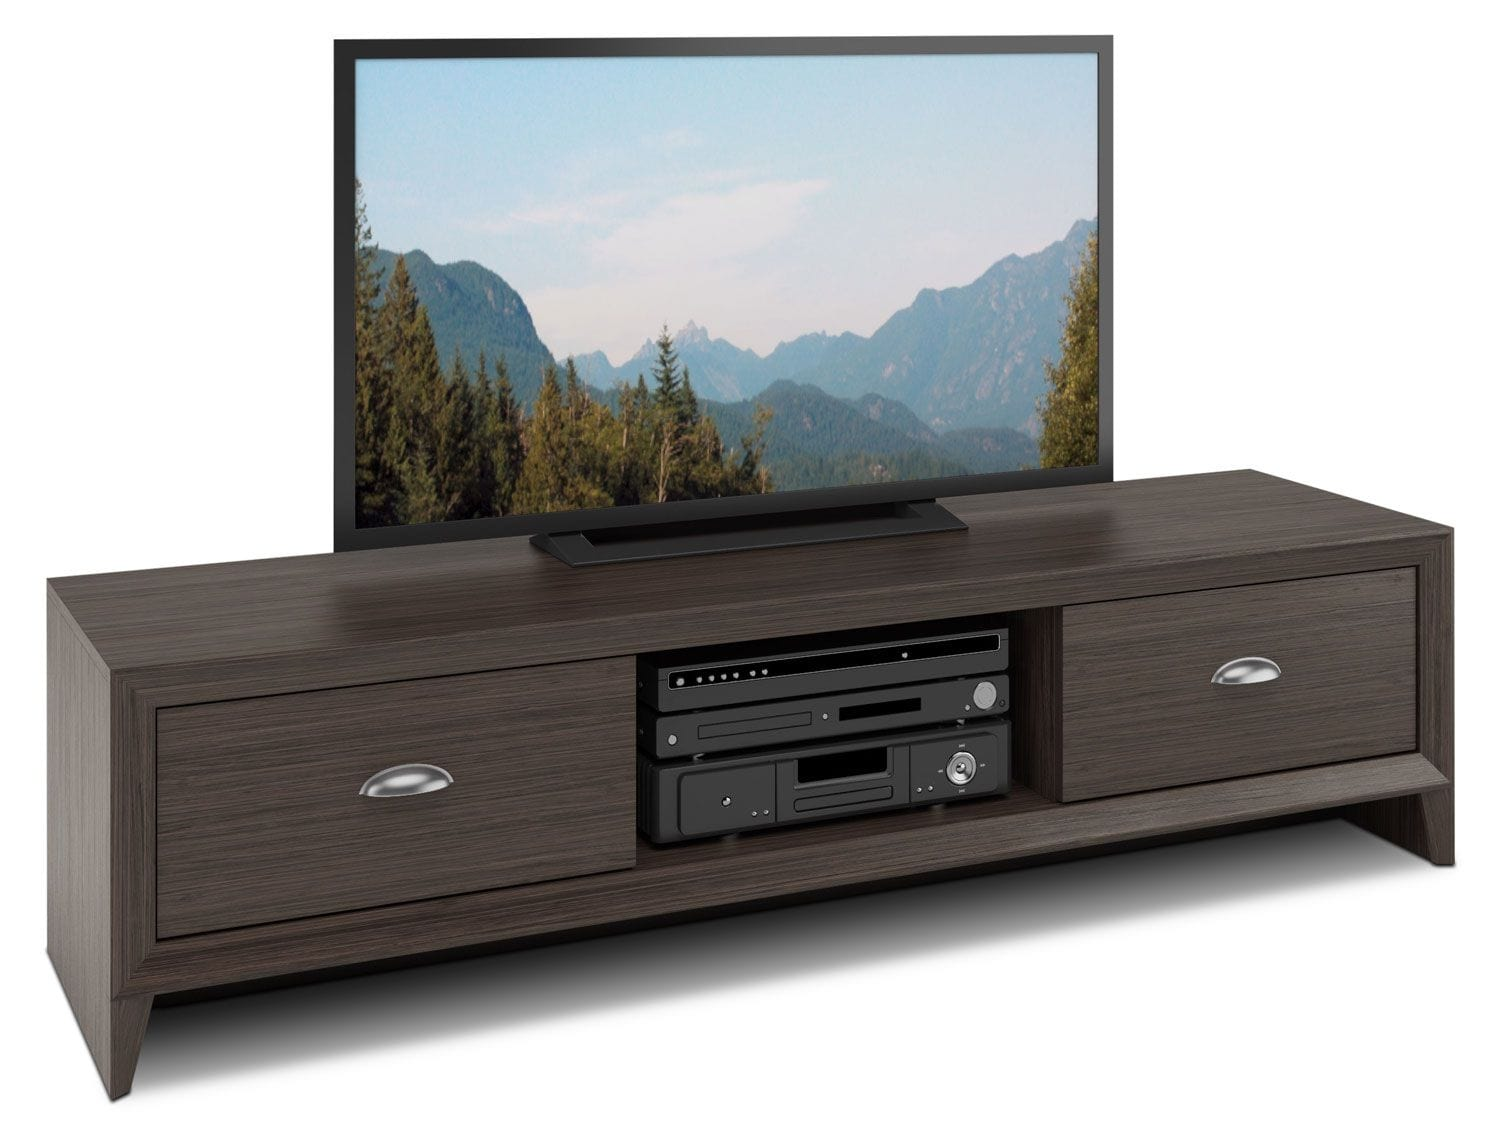 Lakewood TV Stand - Dark Wenge